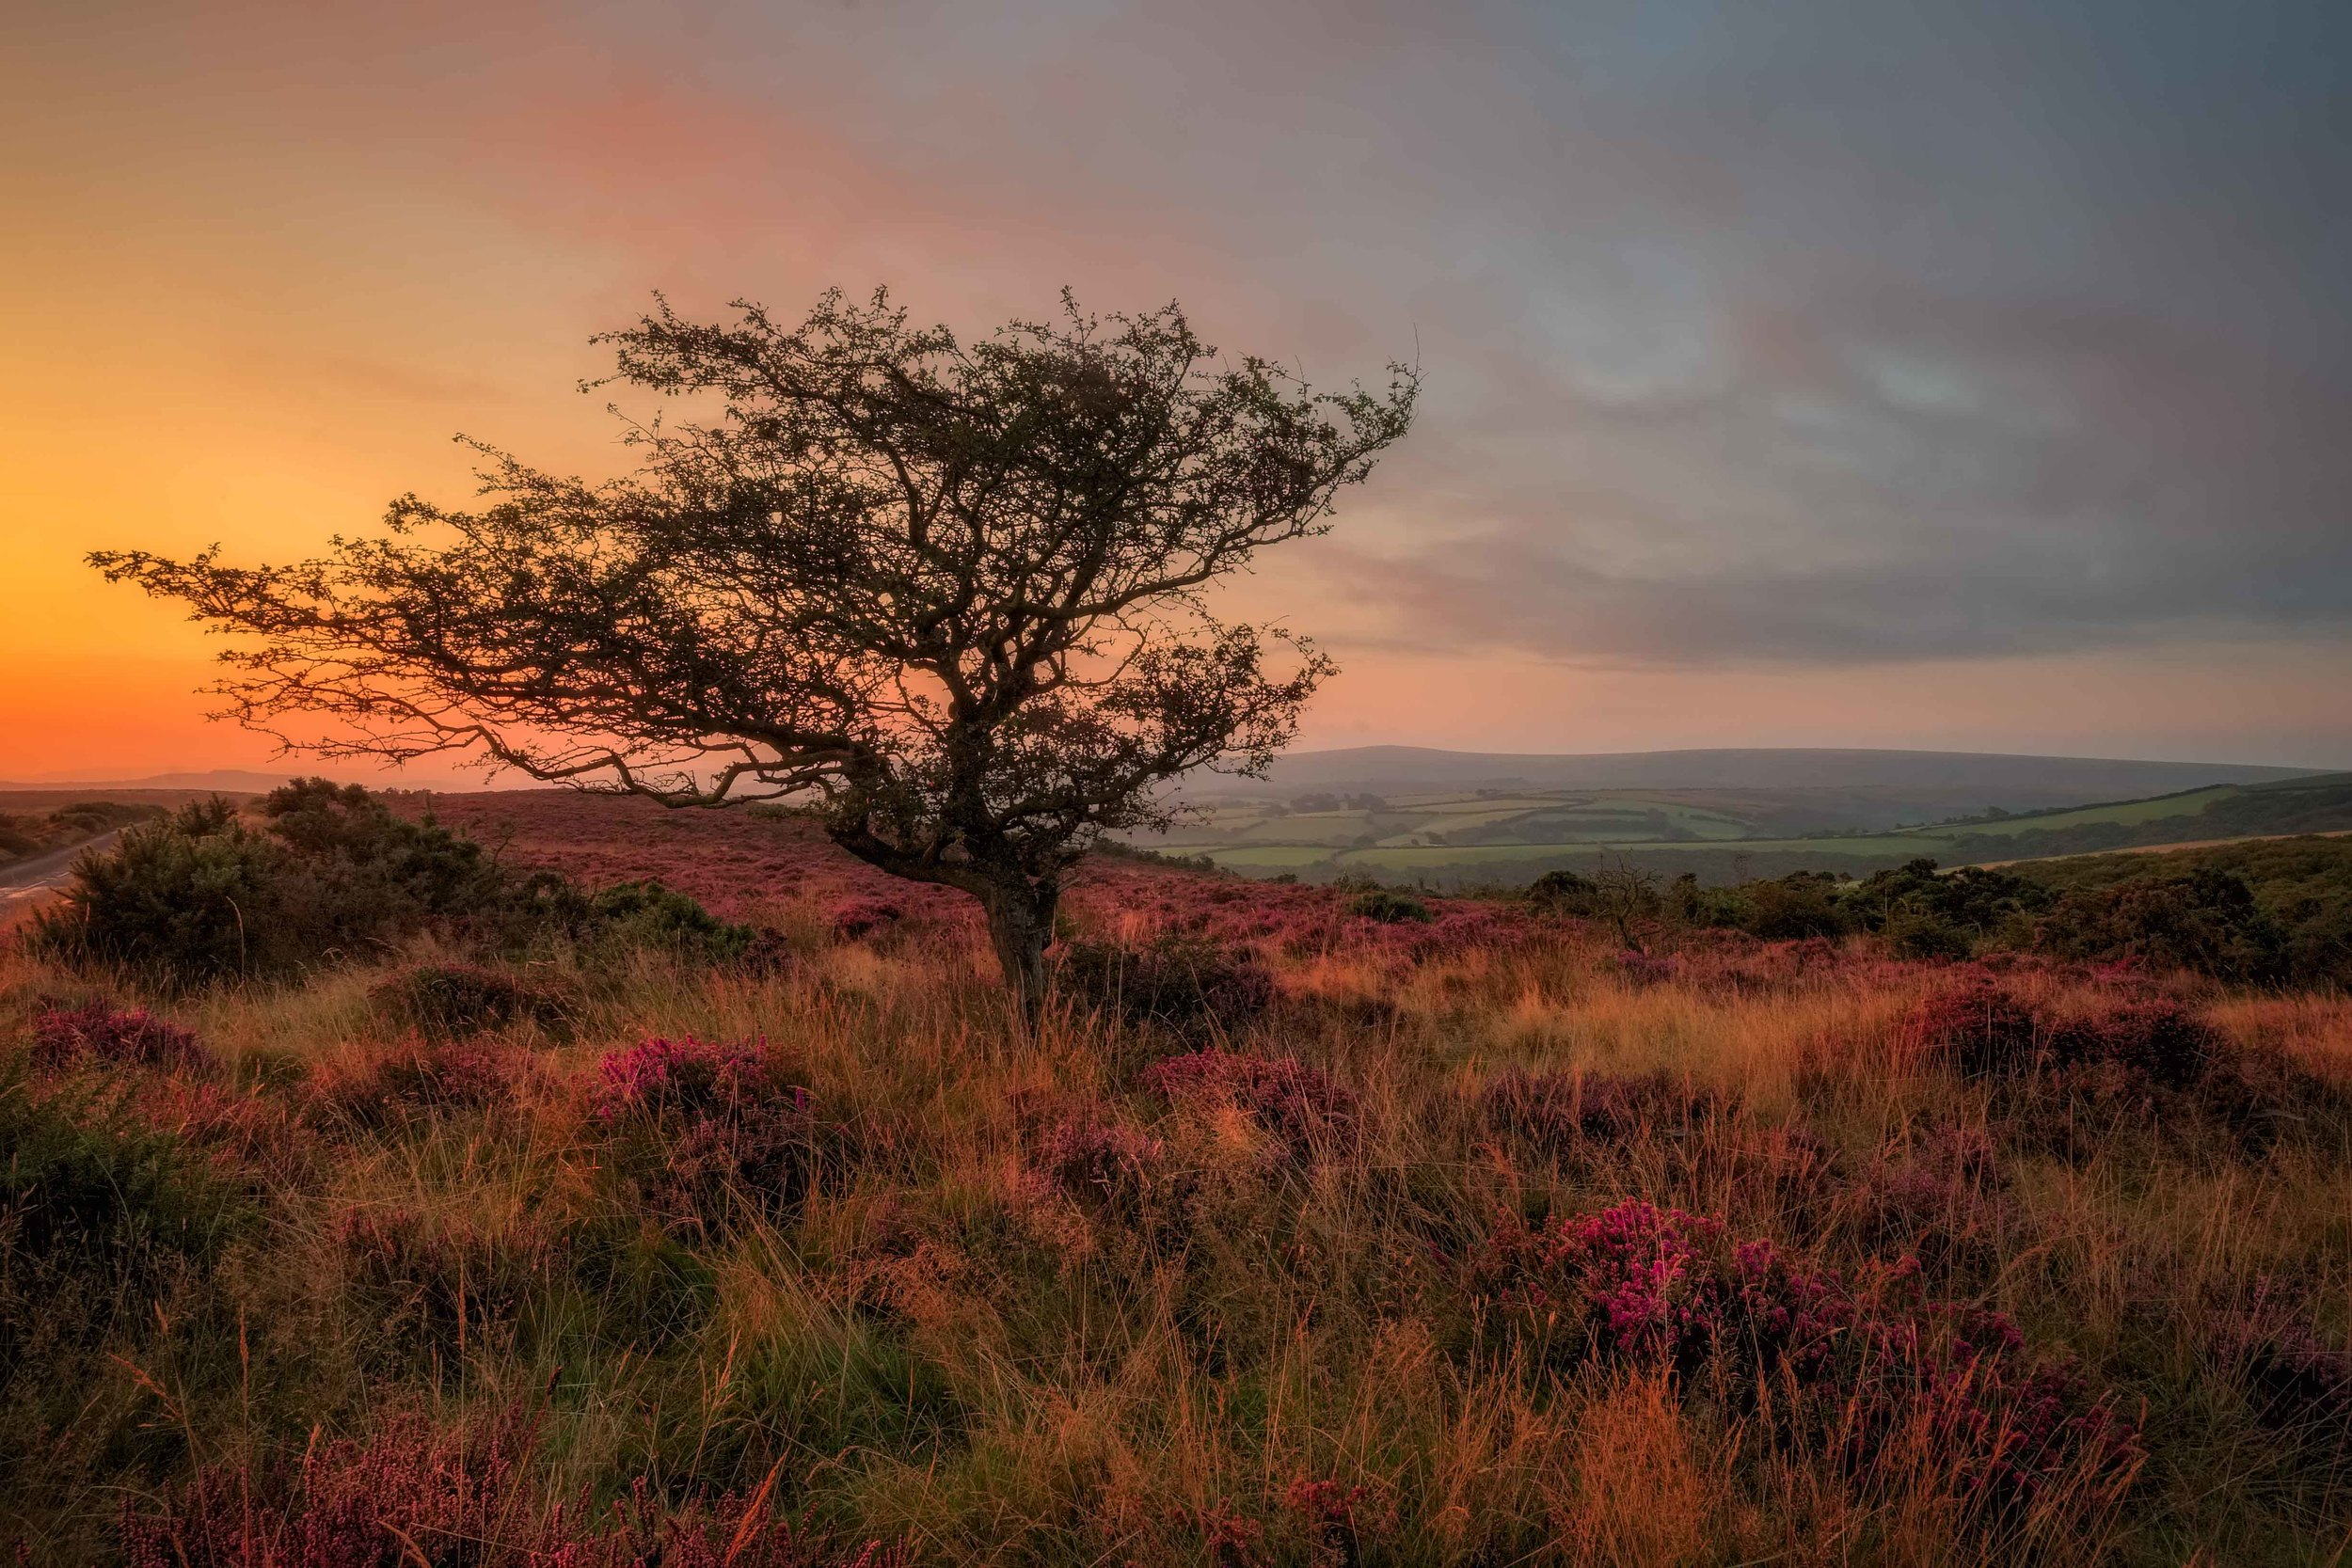 Wind Weathered Tree. Exmoor. Fujifilm X-T1 + 10-24mm @ f/22. 1/10.